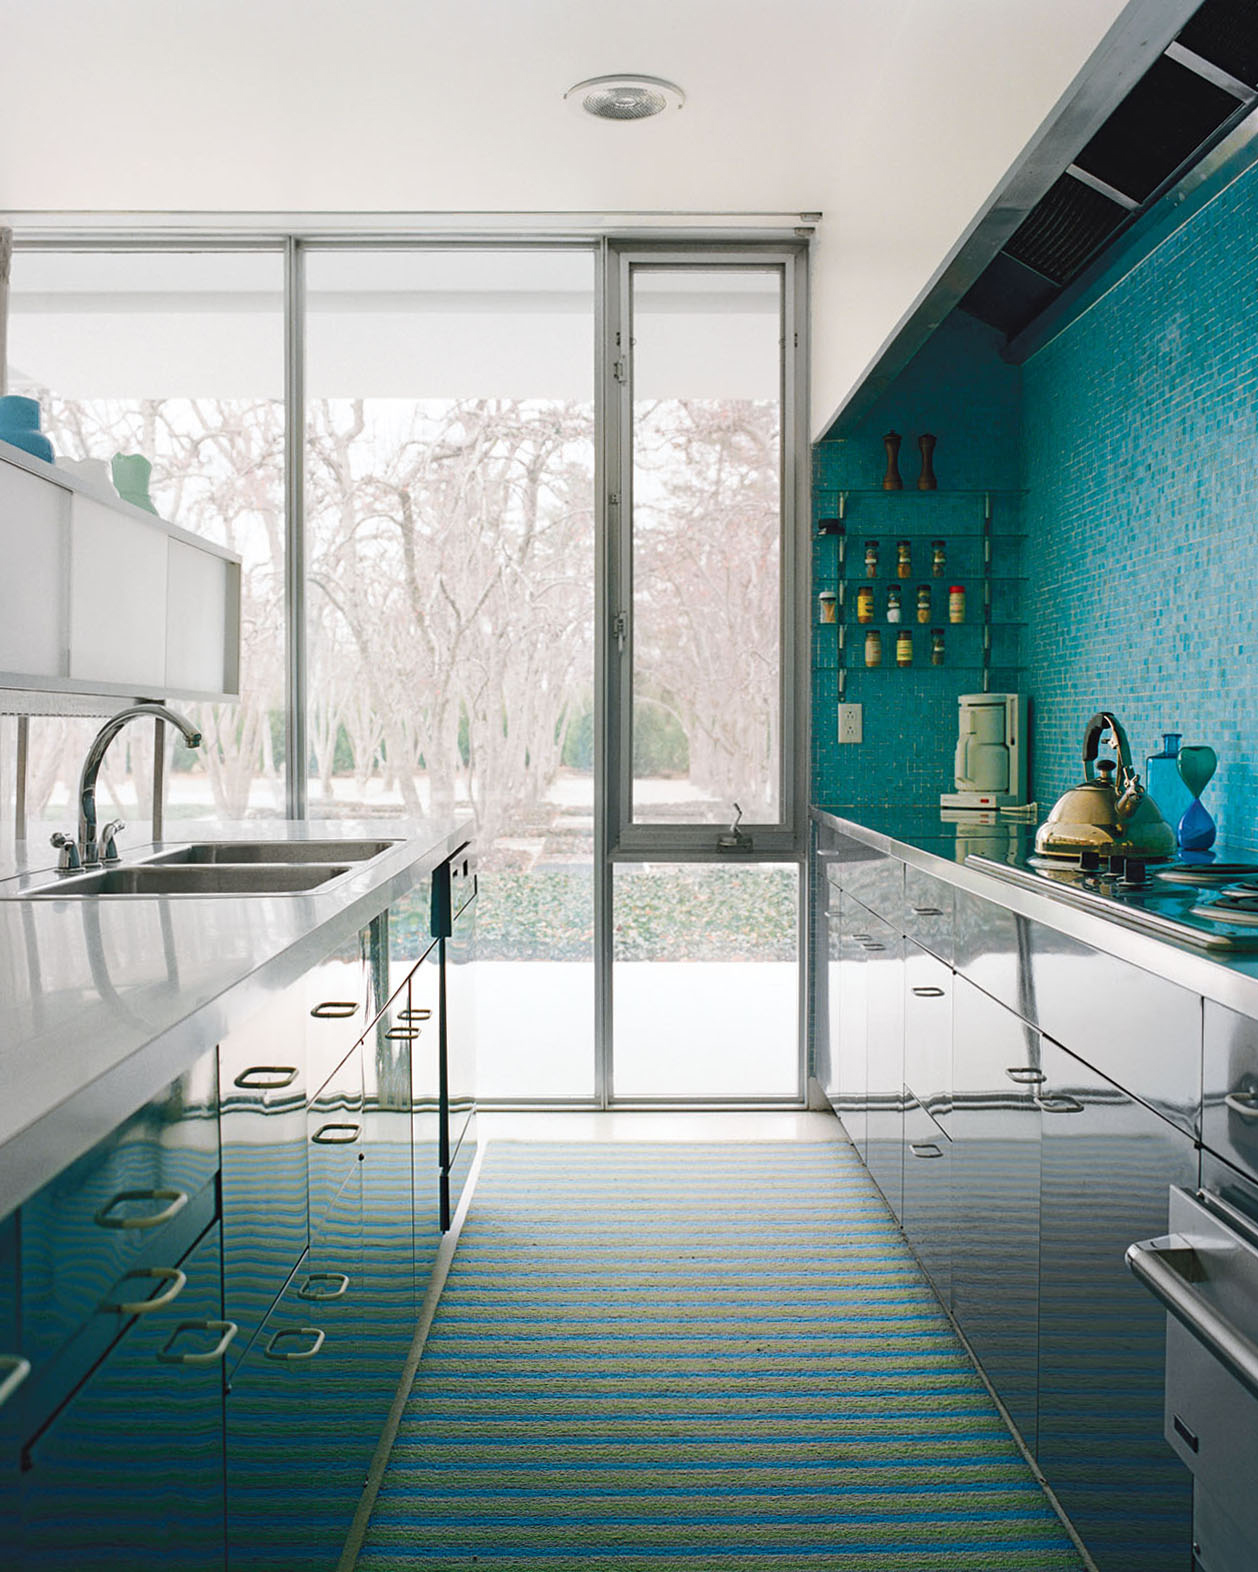 Miller House kitchen with a turquoise blue mosaic tile wall